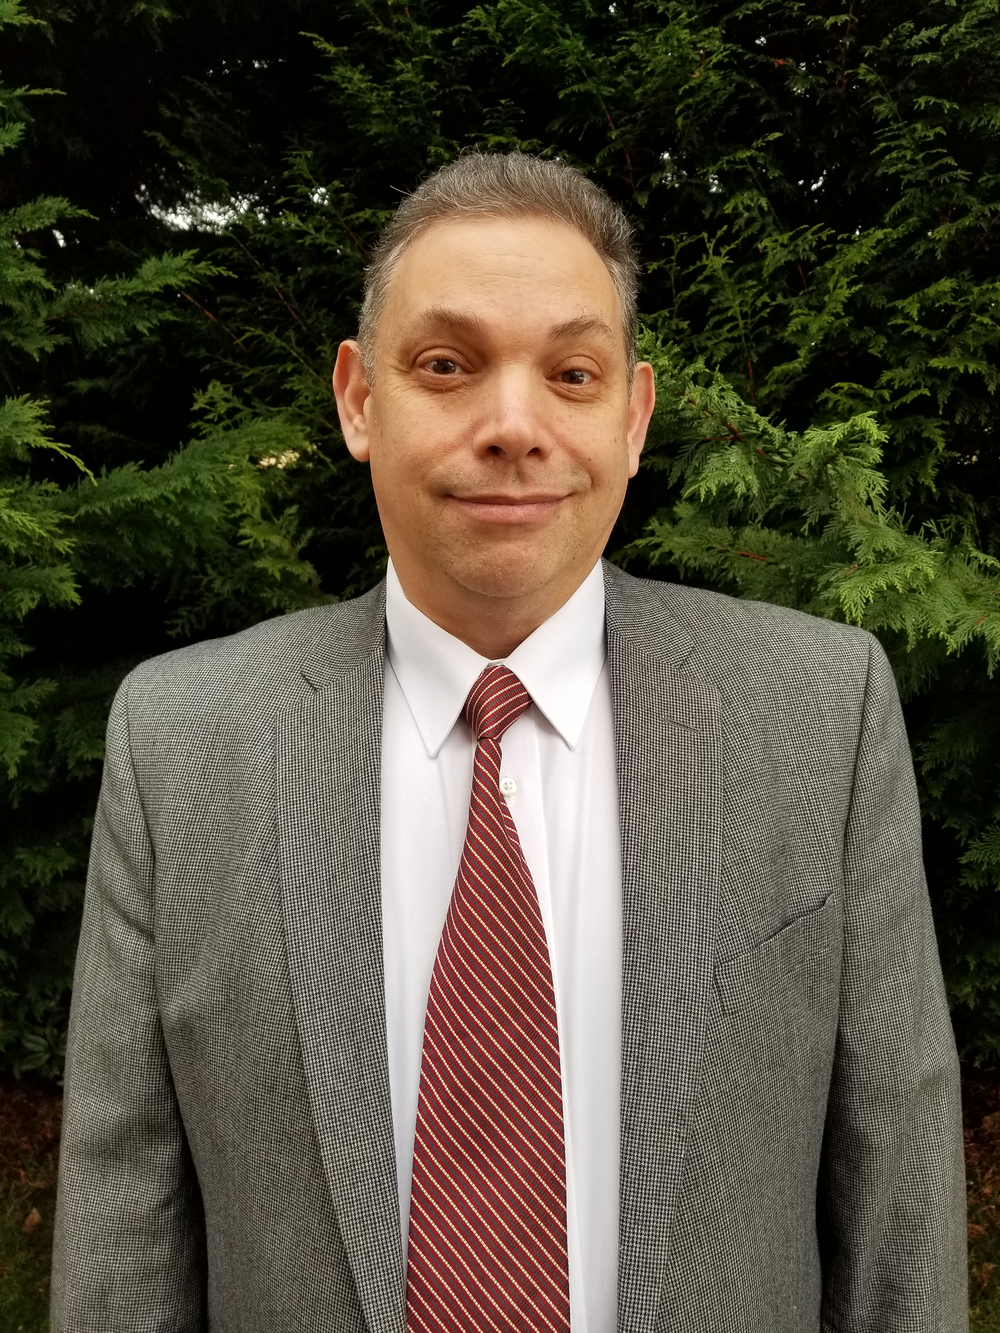 Raymond Bramzel - Mortgage Loan Manager NMLS:505792DE FHA CHUMS Underwriter & Certified FHA Credit Examiner    Certified Ambassador of National Association of Mortgage UnderwritersCertified in Due Diligence in Underwriting & Processing